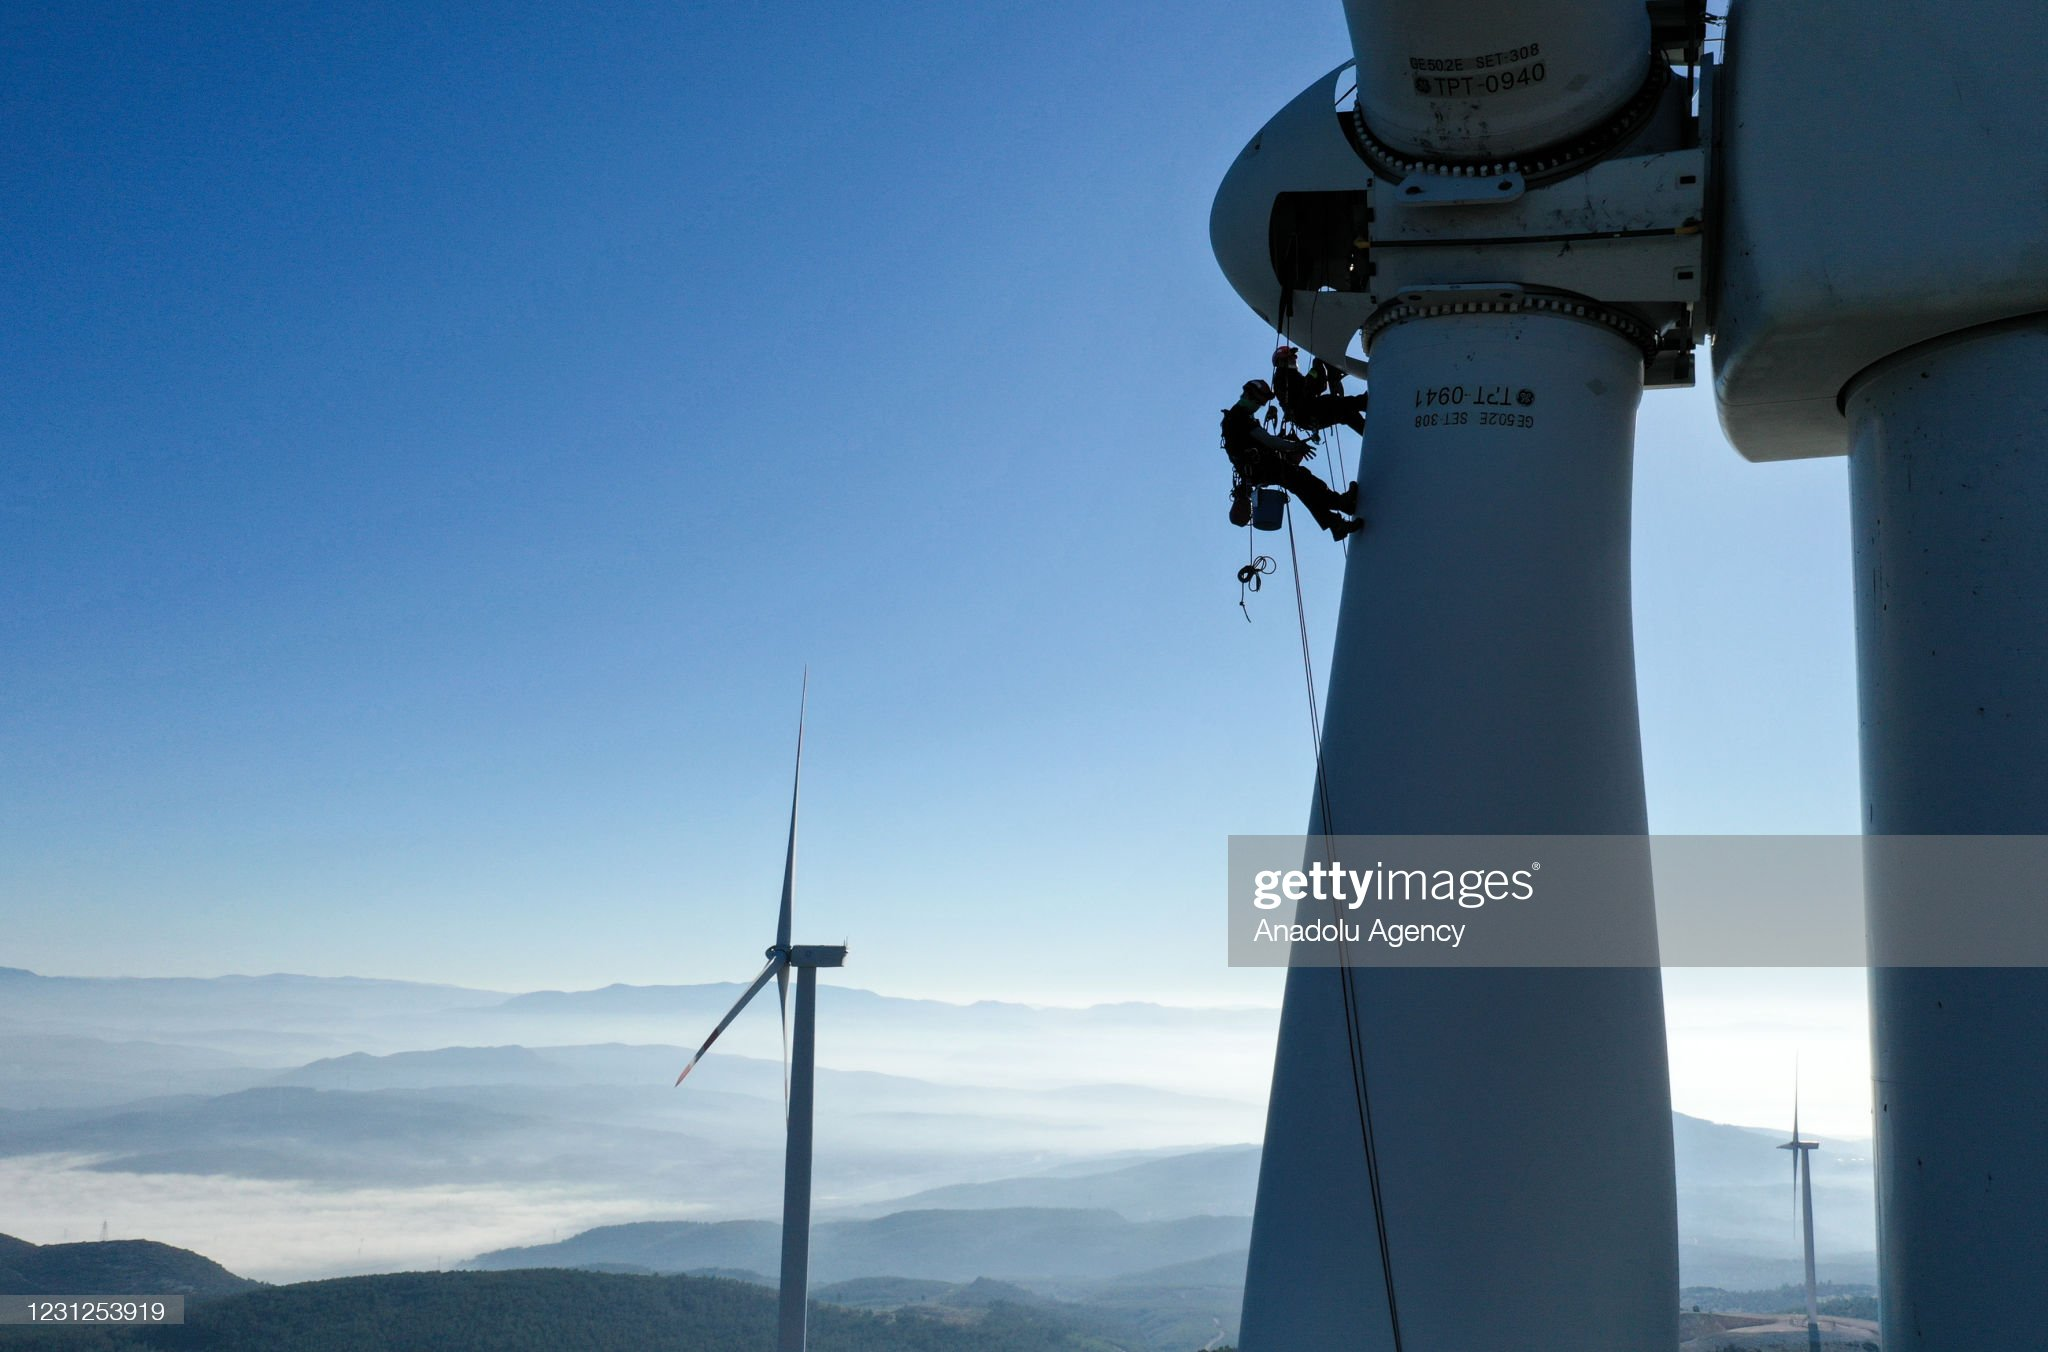 Rope access technicians work on wind turbines